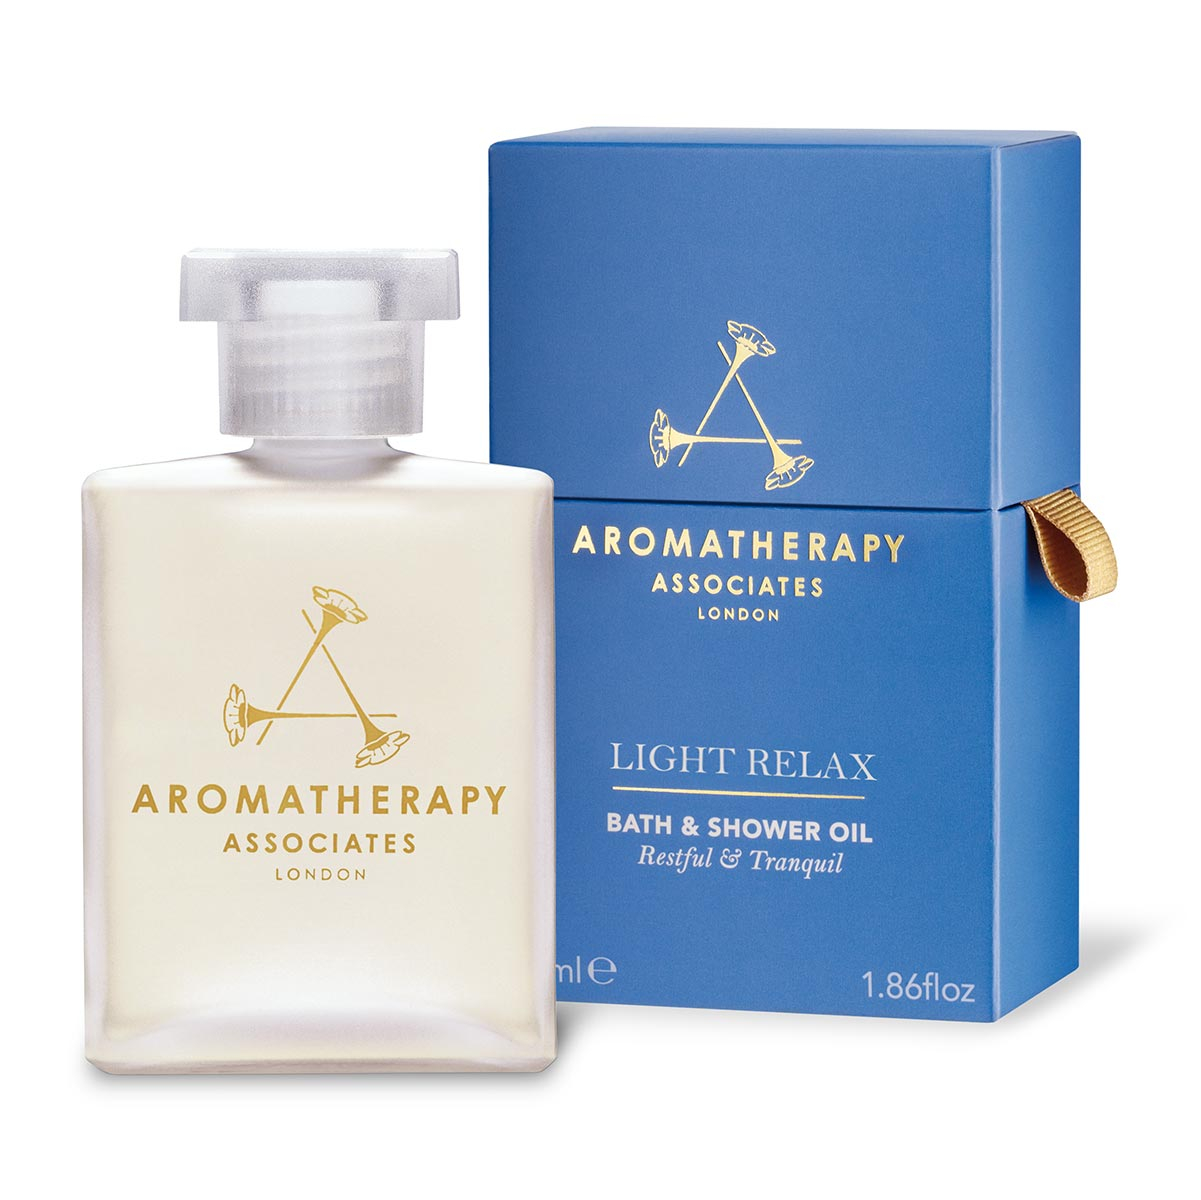 Light Relax Bath and Shower Oil